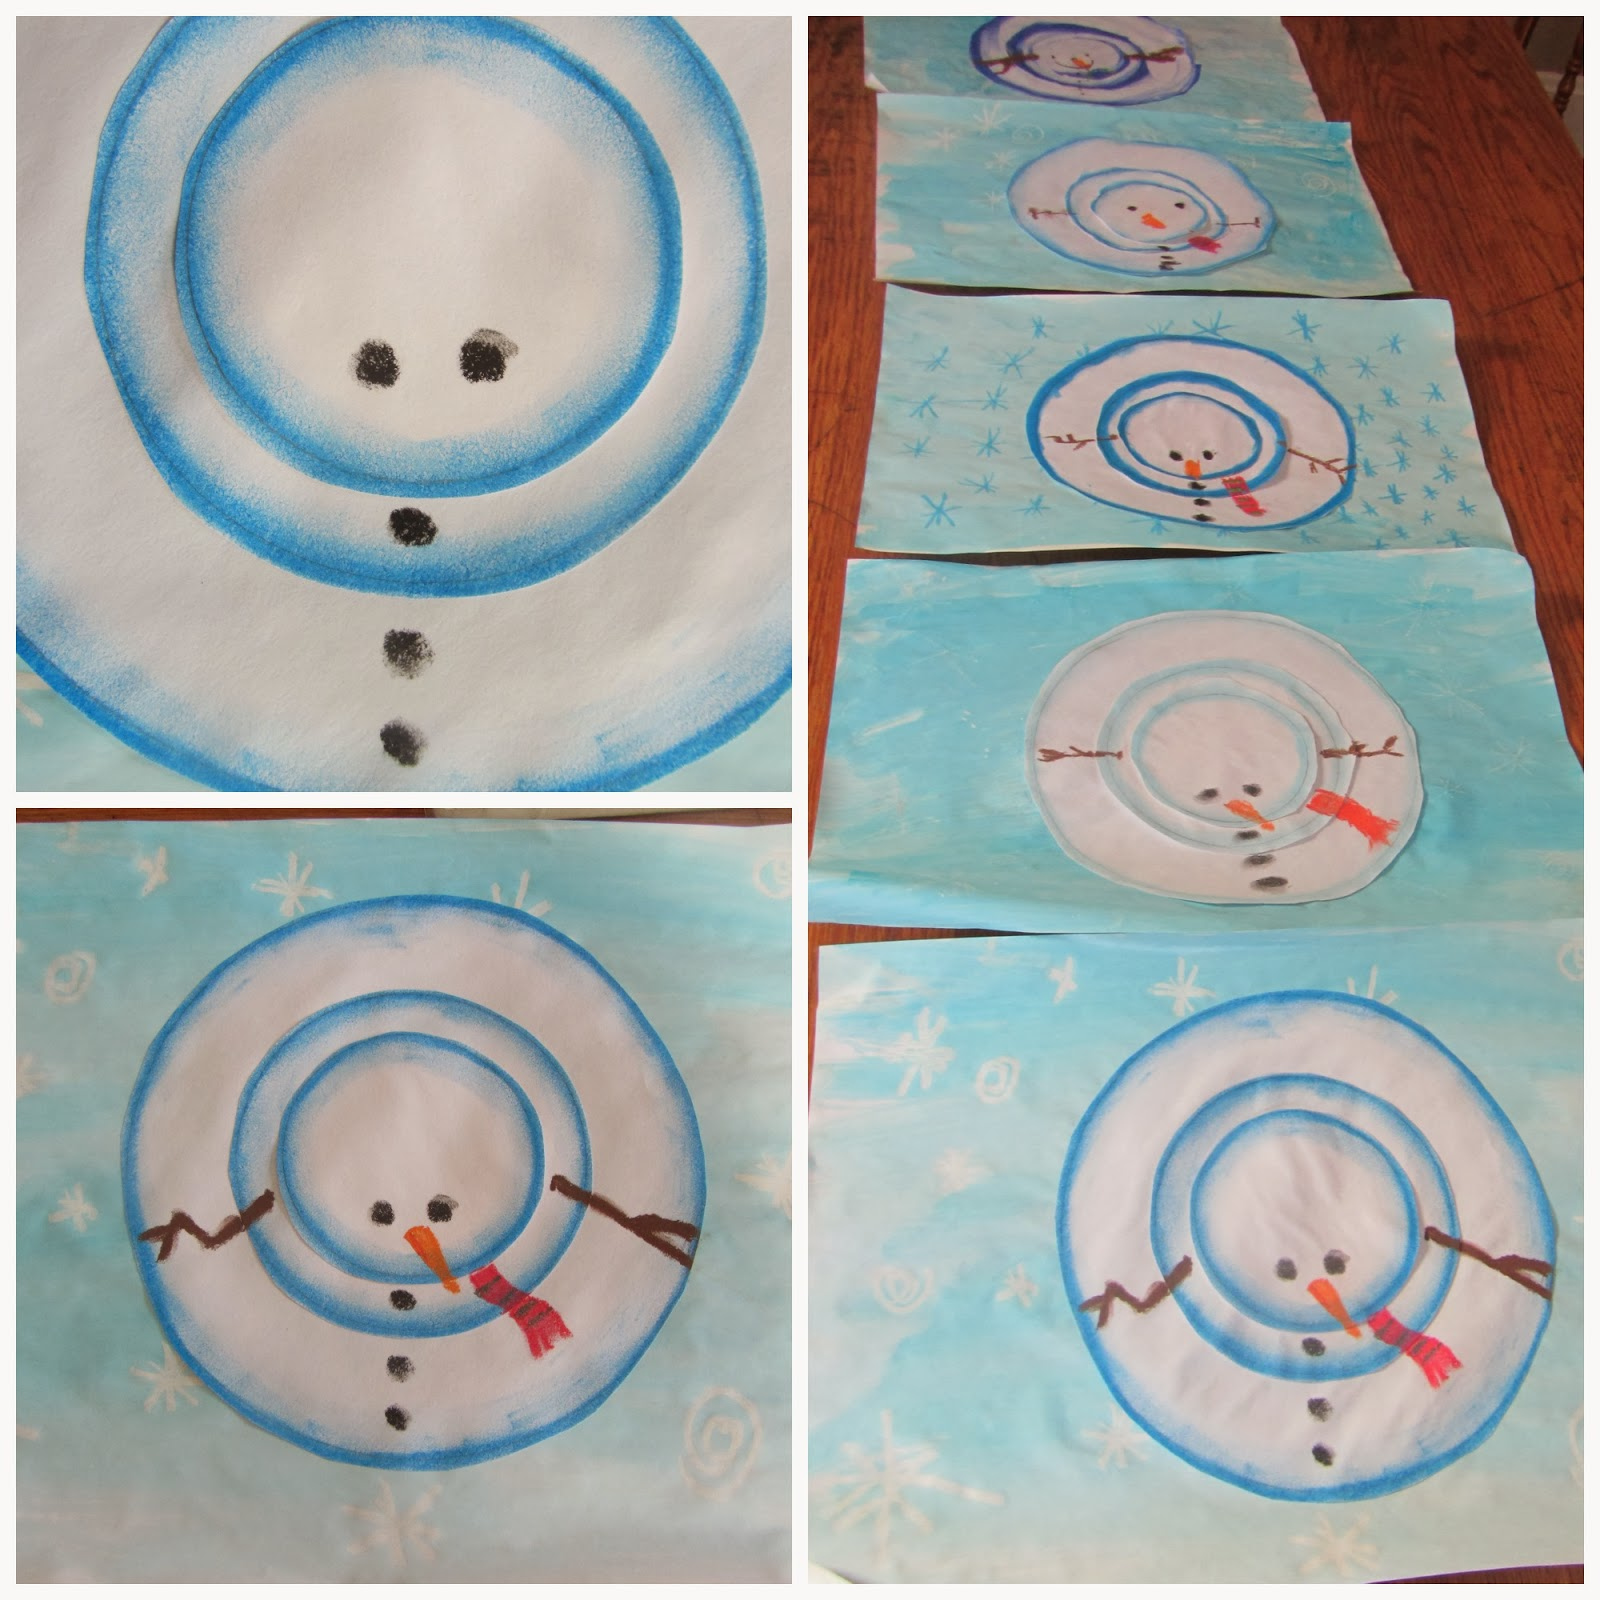 Aerial Snowman Chalk Art Tutorial-The Unlikely Homeschool